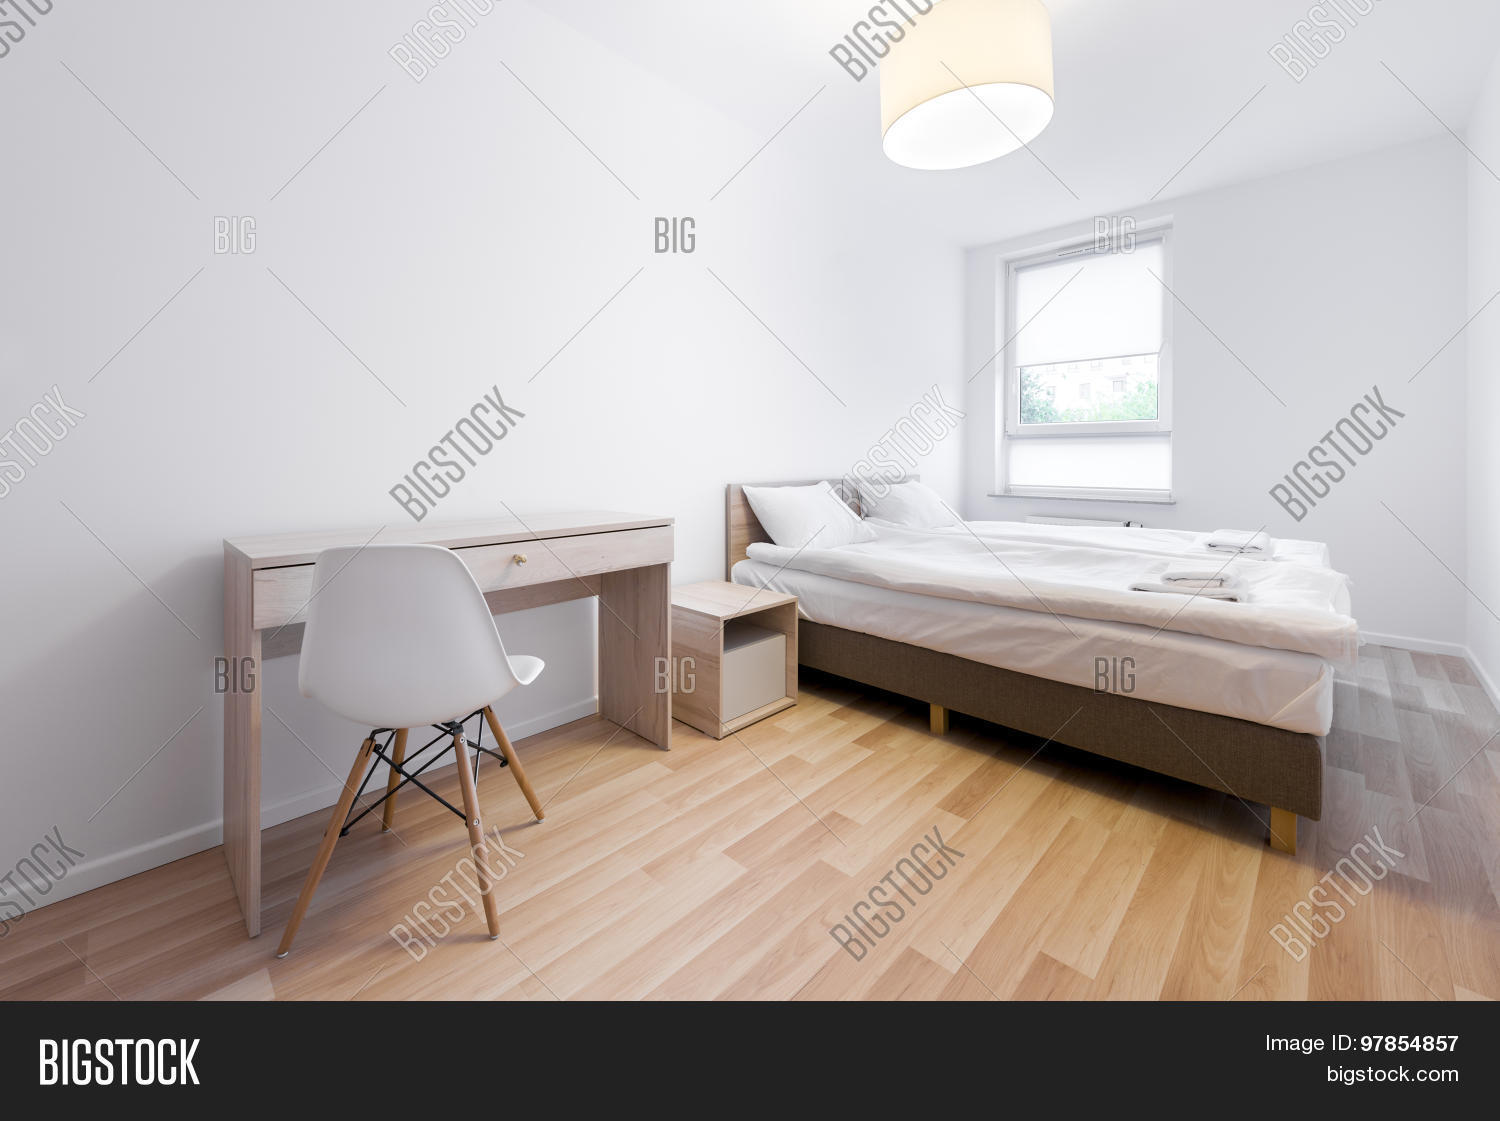 Modern small sleeping room interior image photo bigstock for Sleeping room interior design